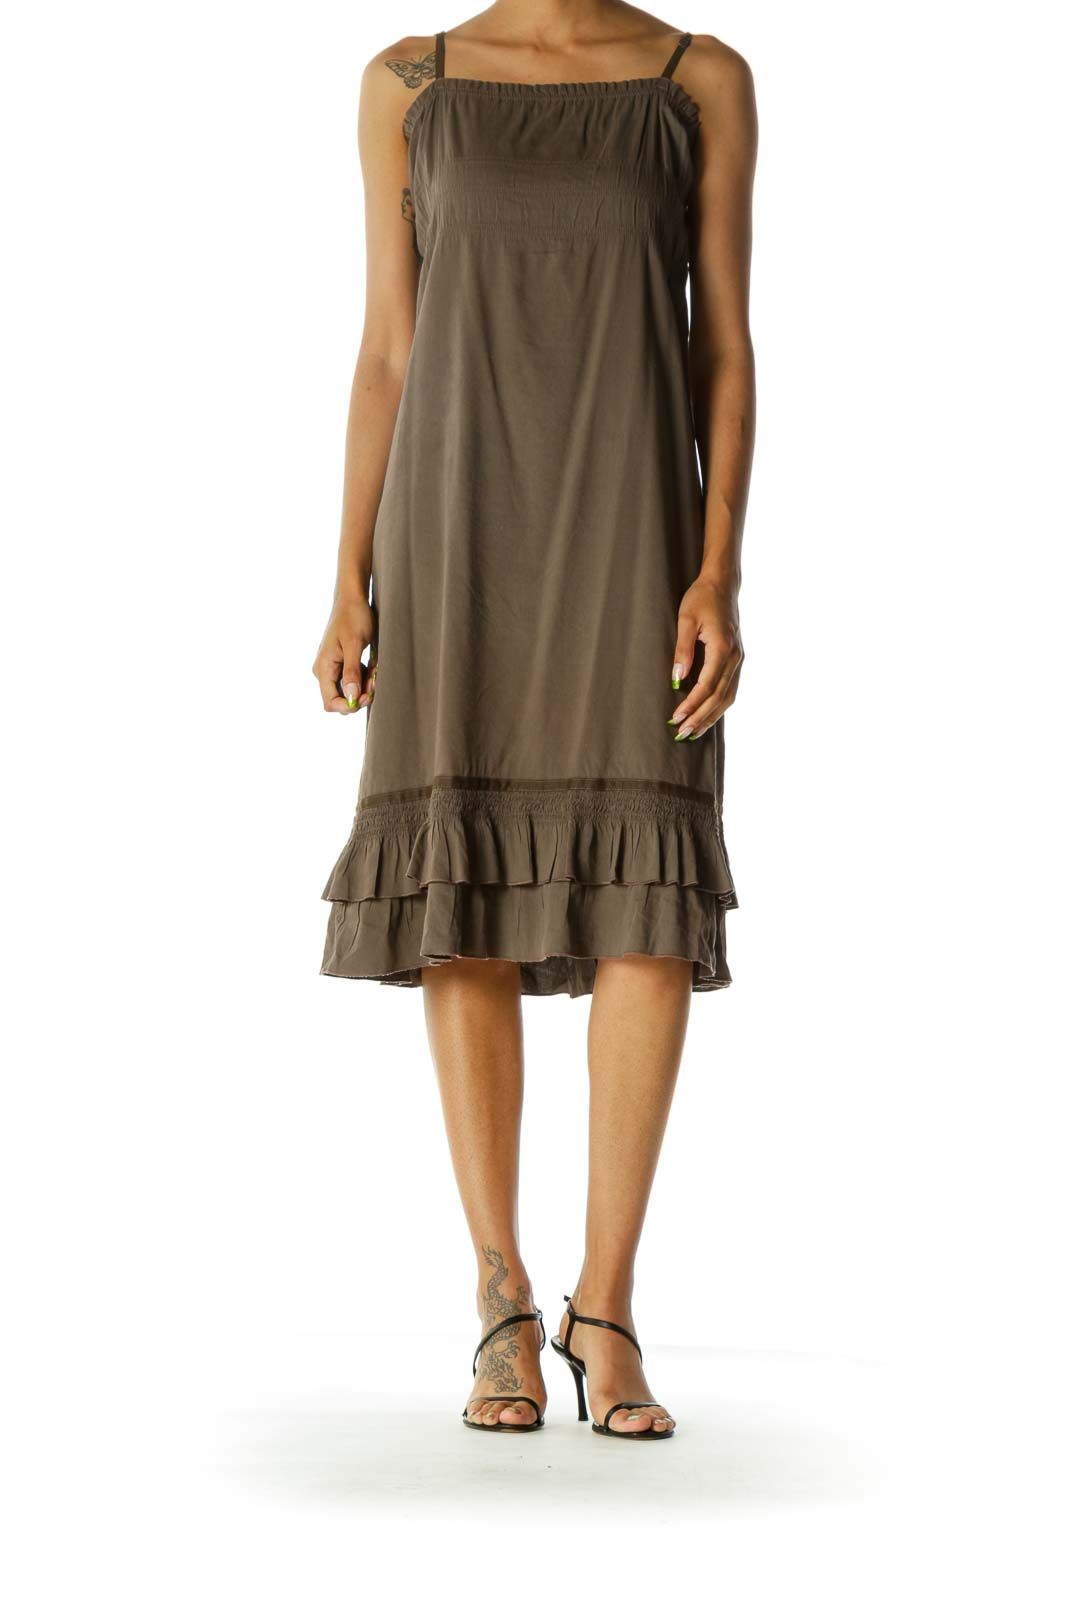 Brown Square Neck Spaghetti Strap Ruffled Detail Day Dress